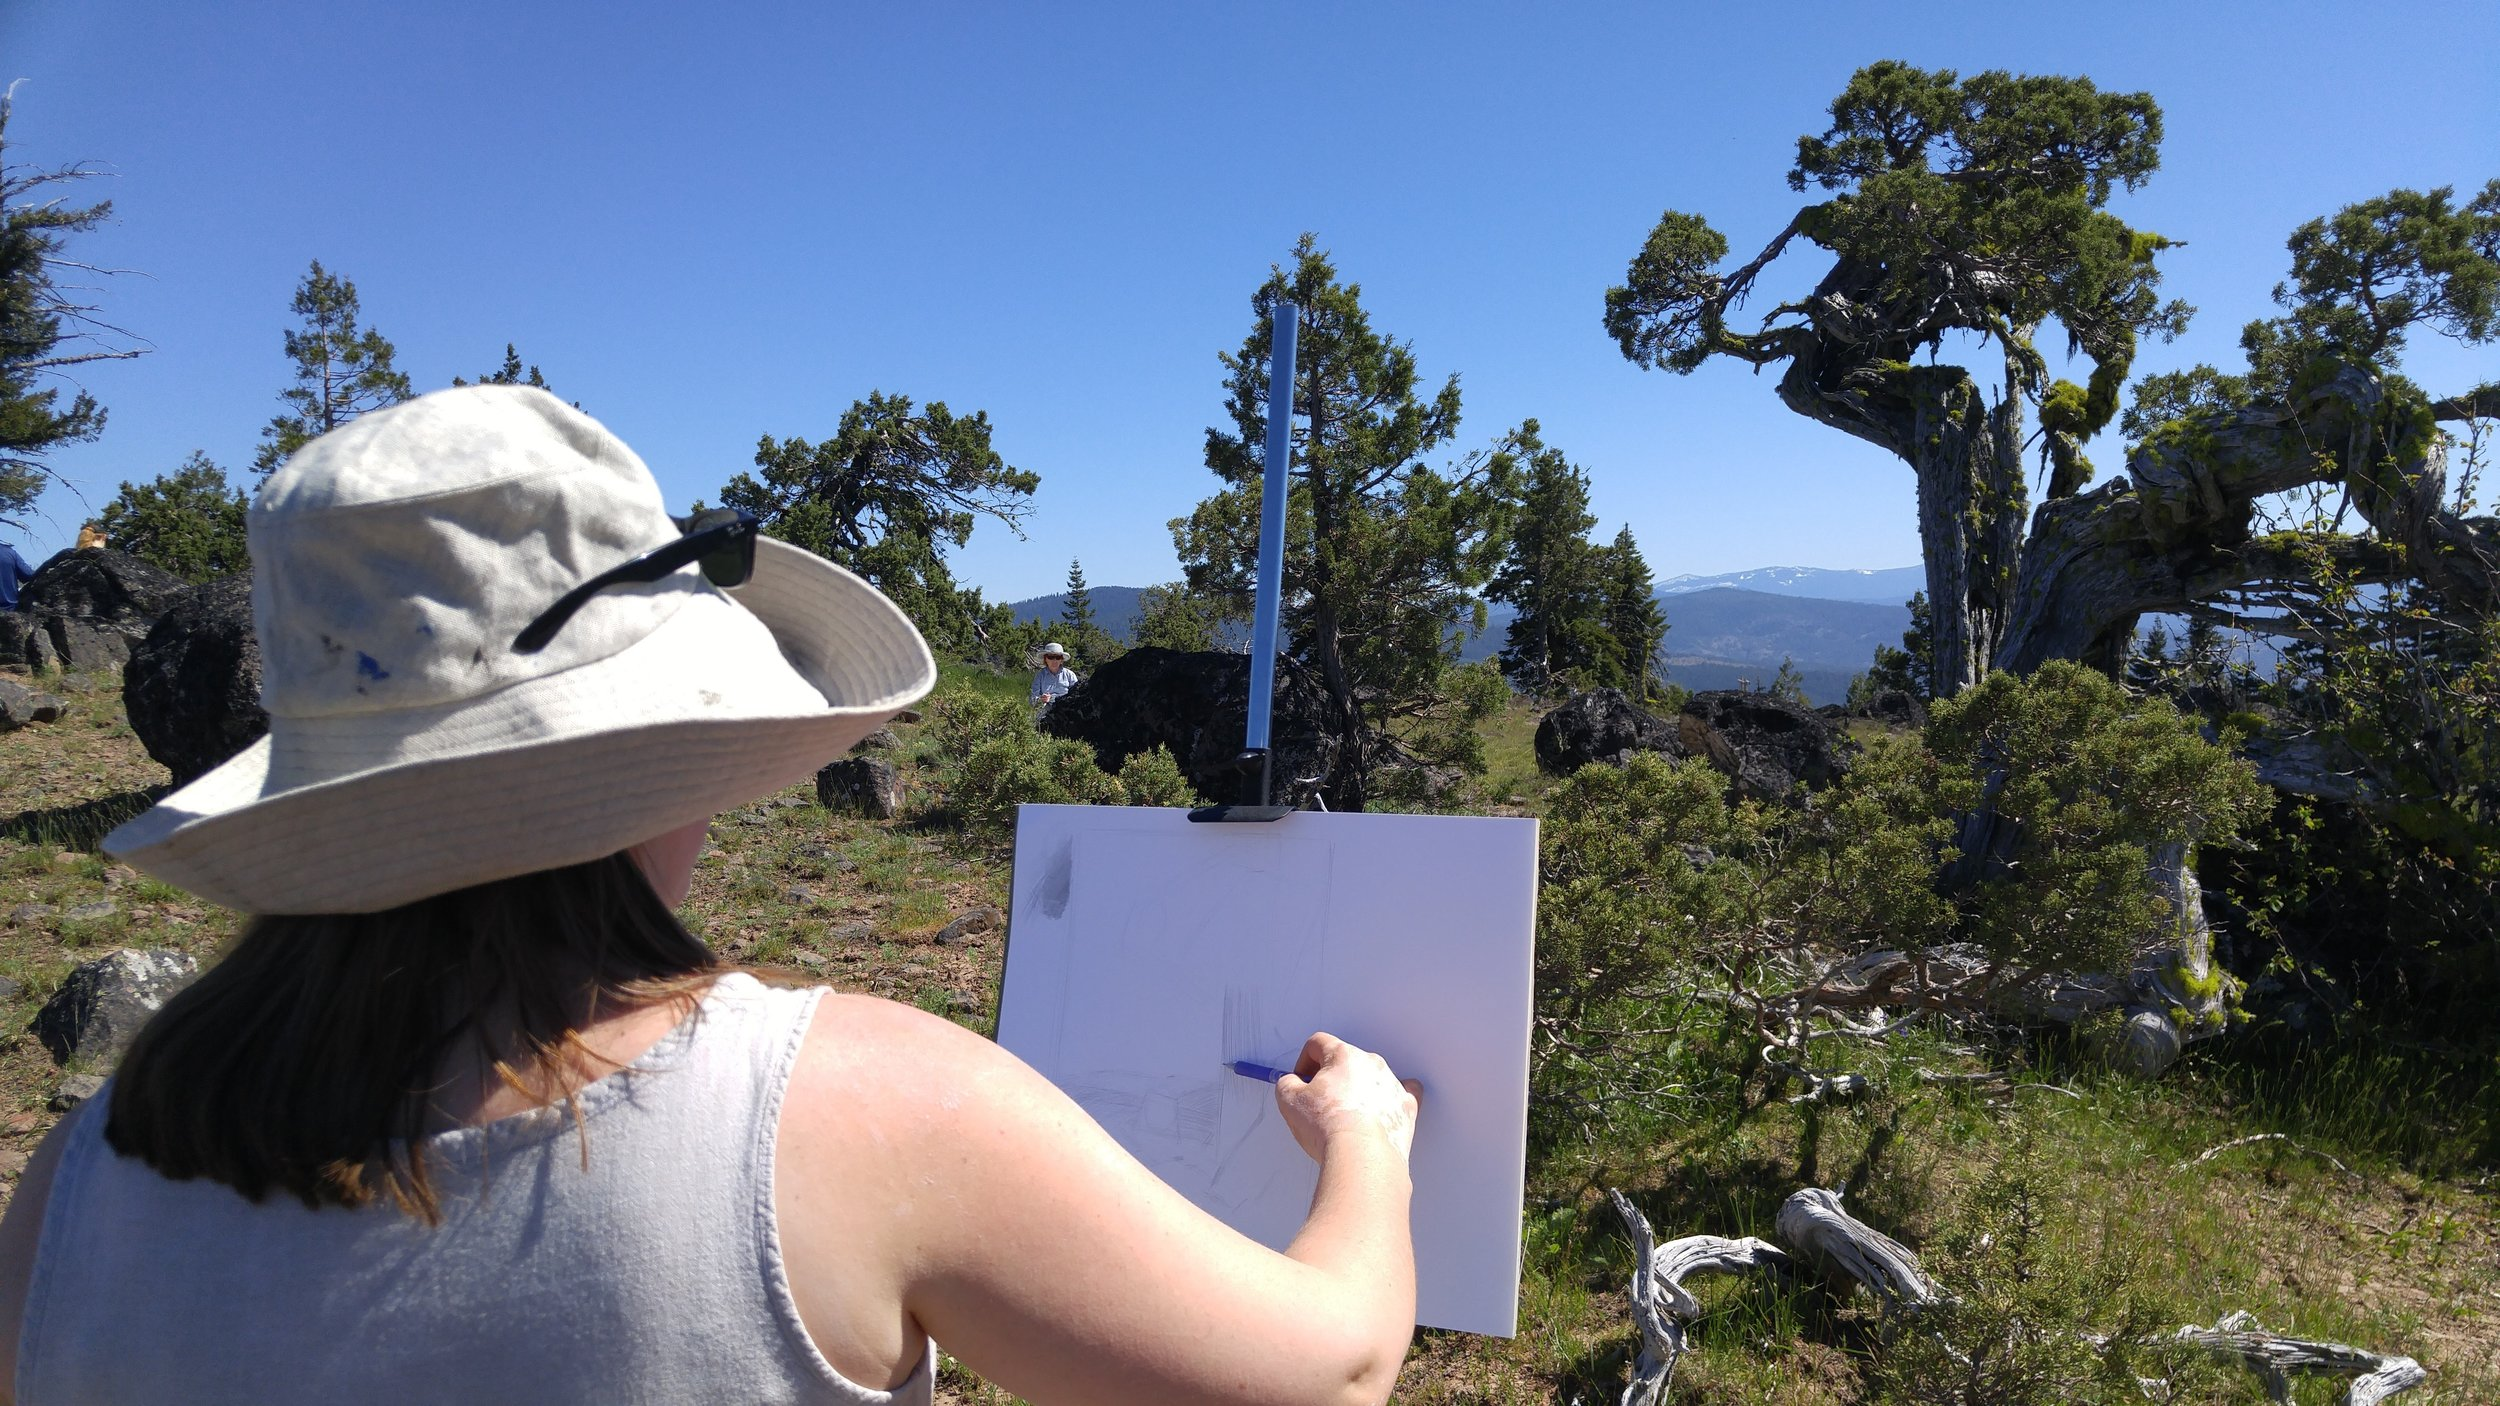 Sarah Burns demonstrates sketch at her easel.